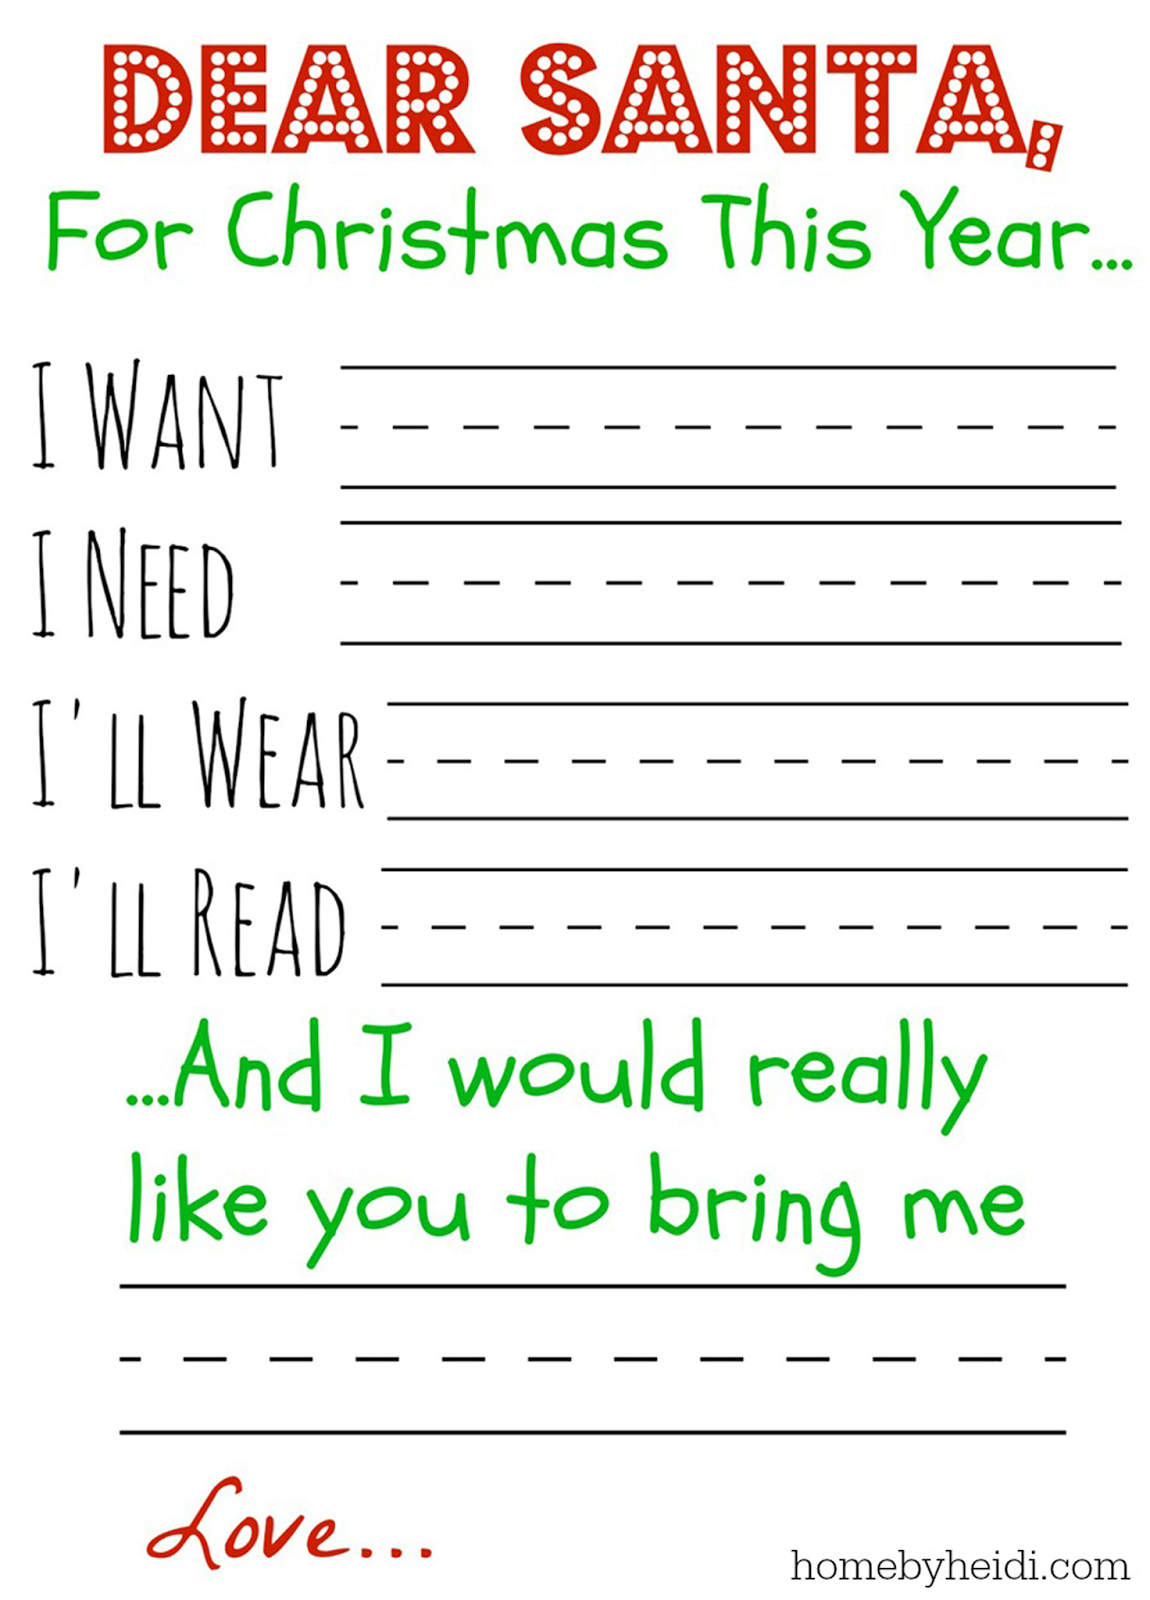 Home By Heidi: Letter to Santa